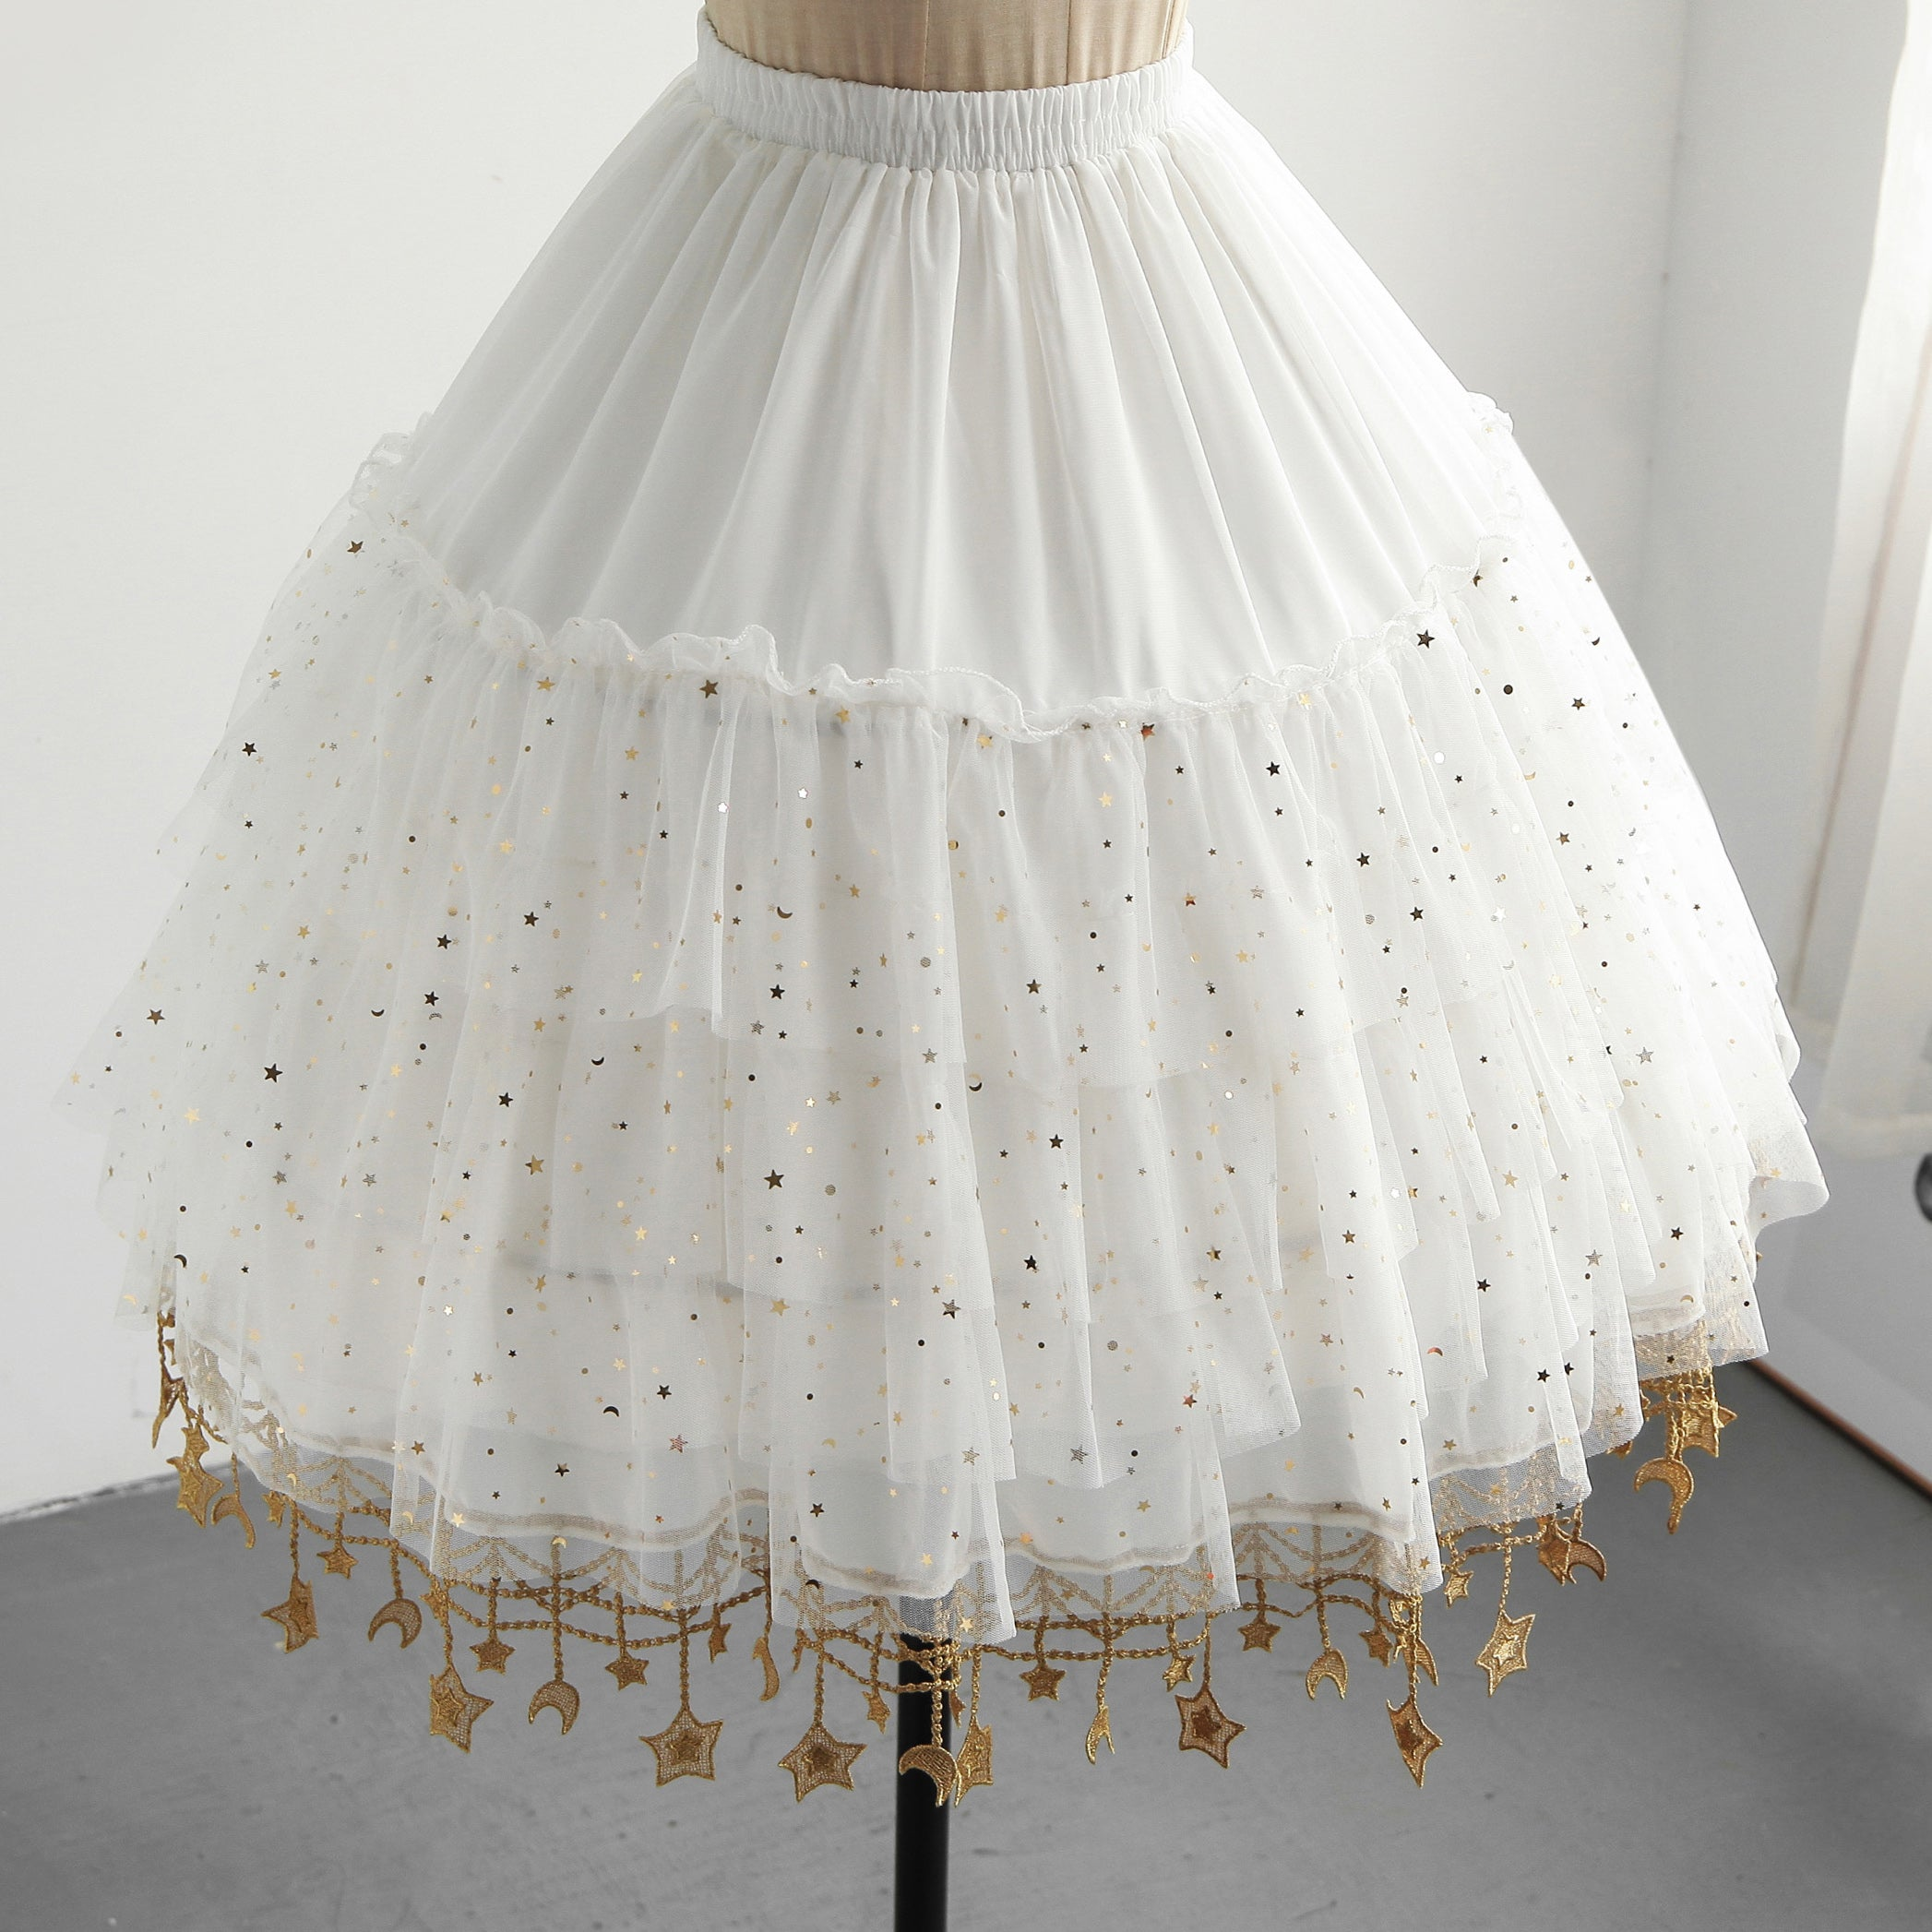 Starry Tutu Skirt pic